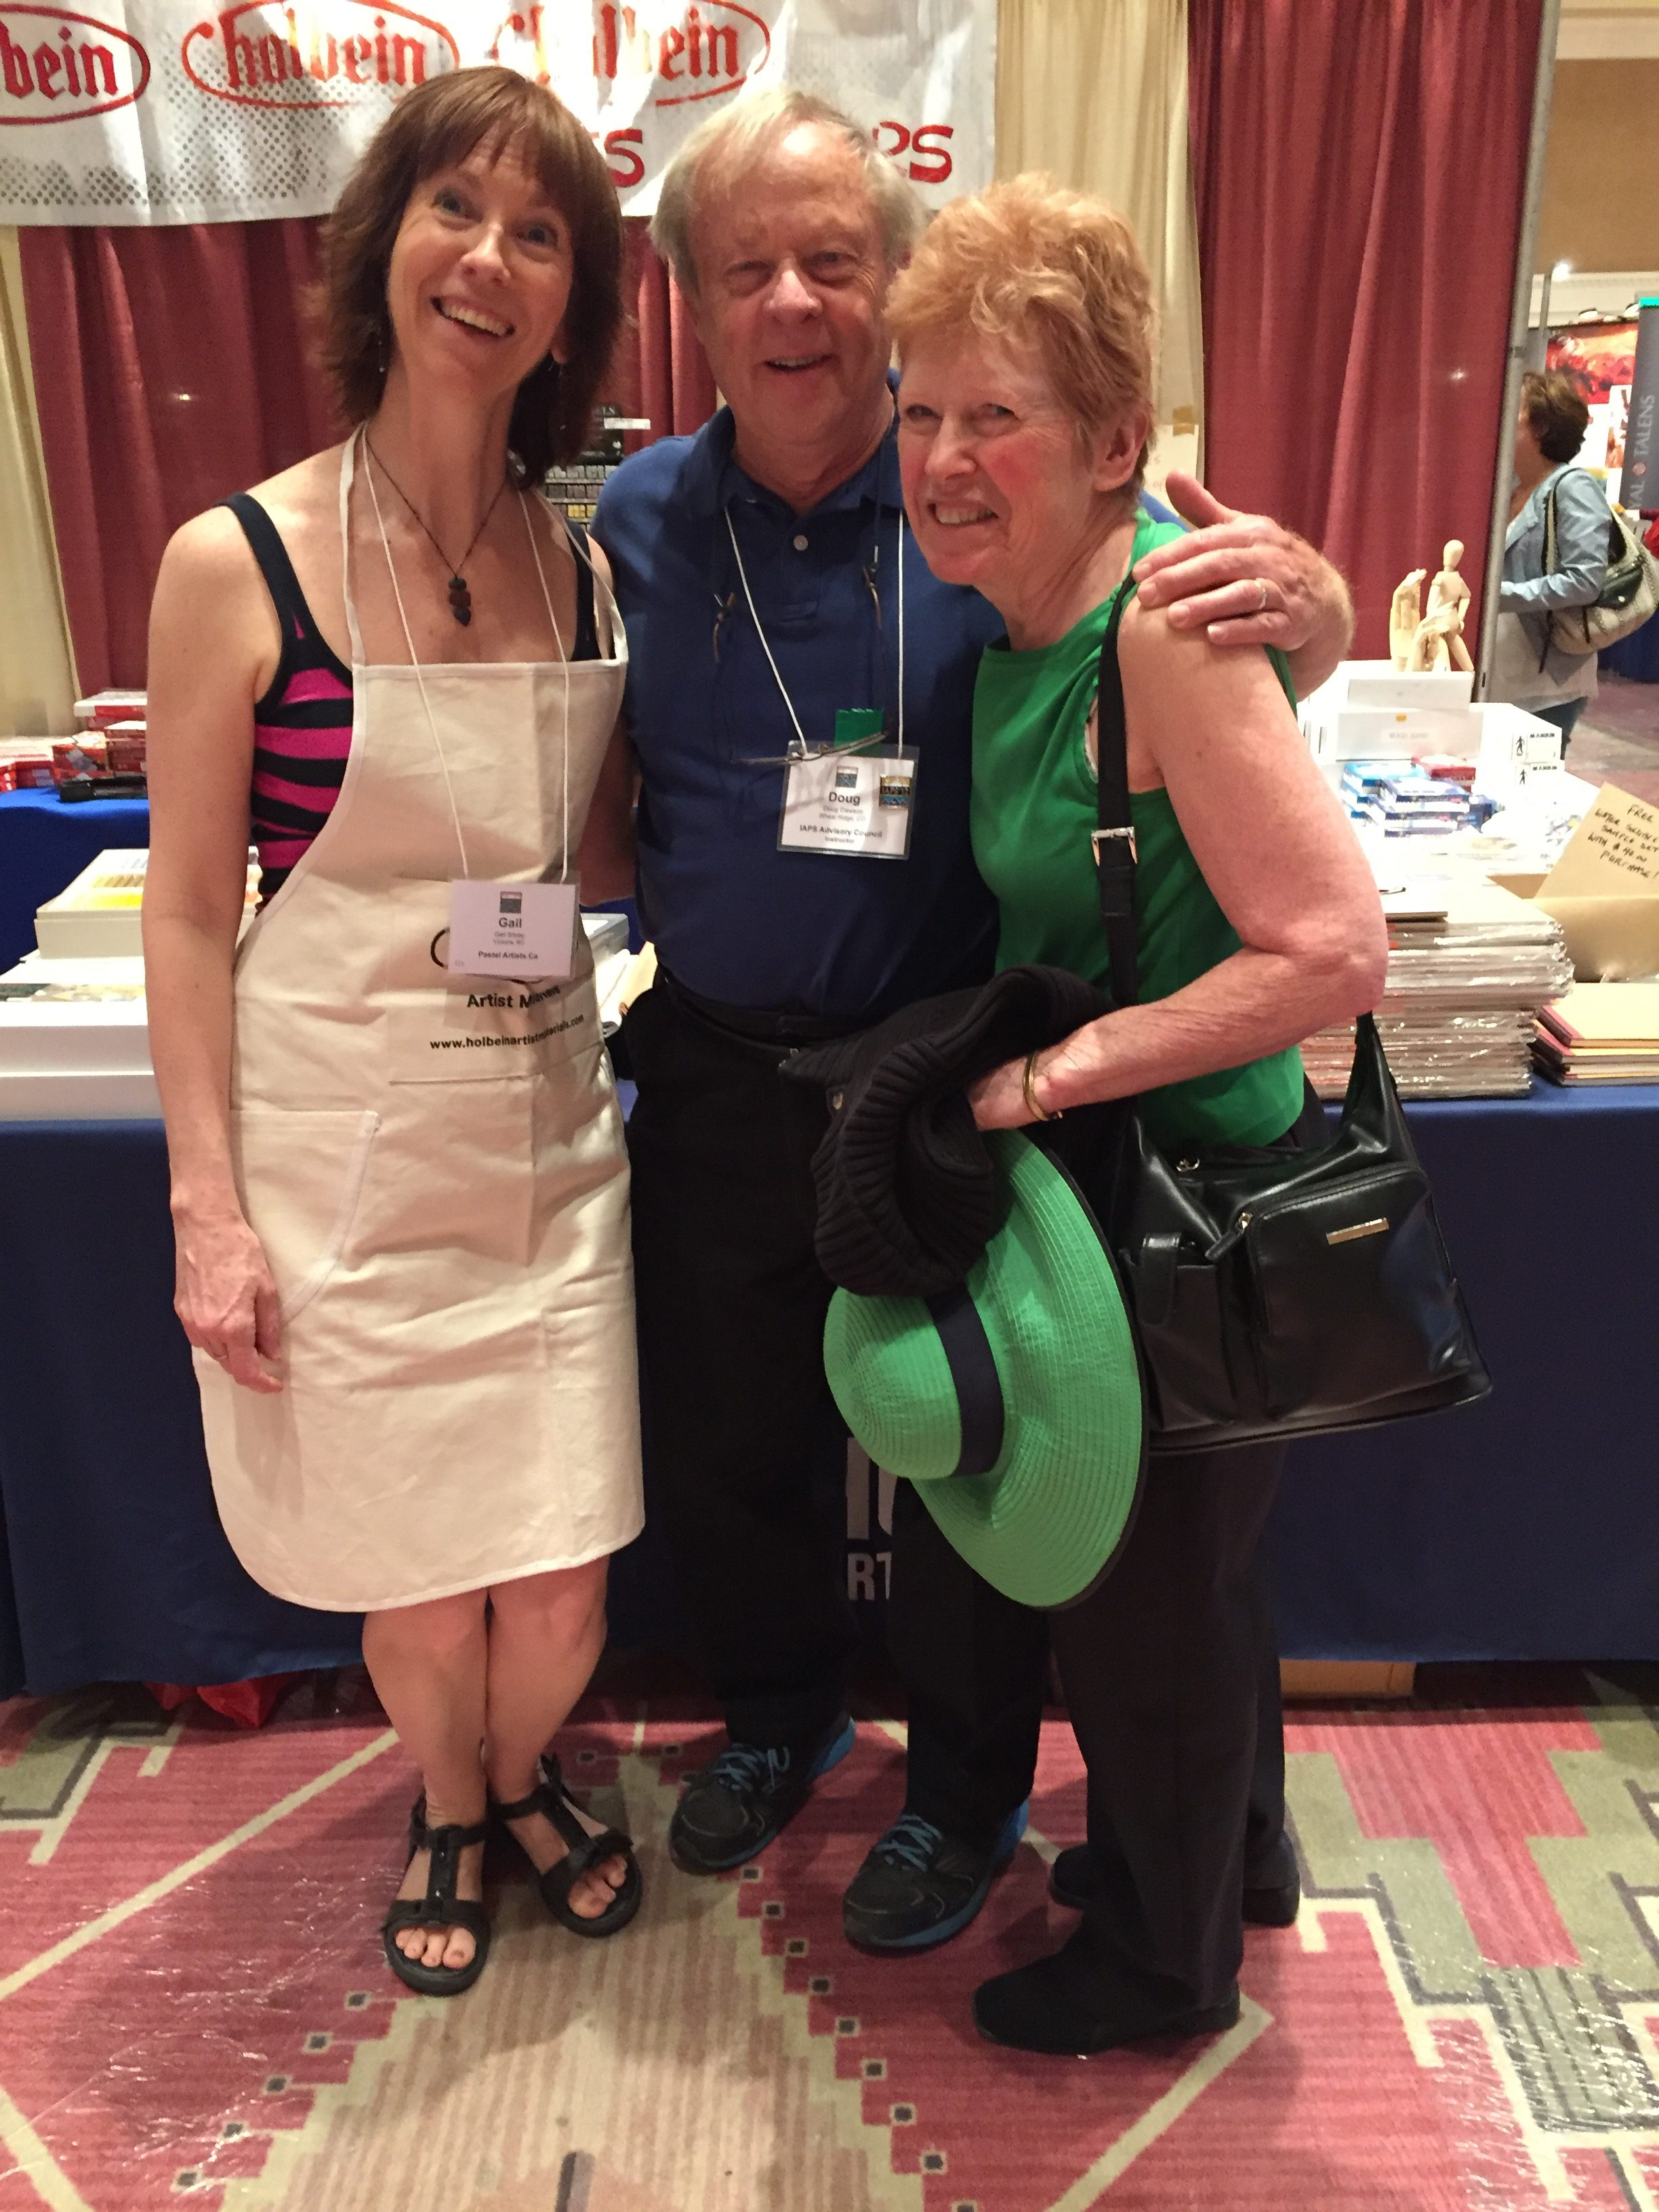 Artist interview videos: Doug and Sue Dawson dropped into the Holbein booth where I worked the first morning of the trade show